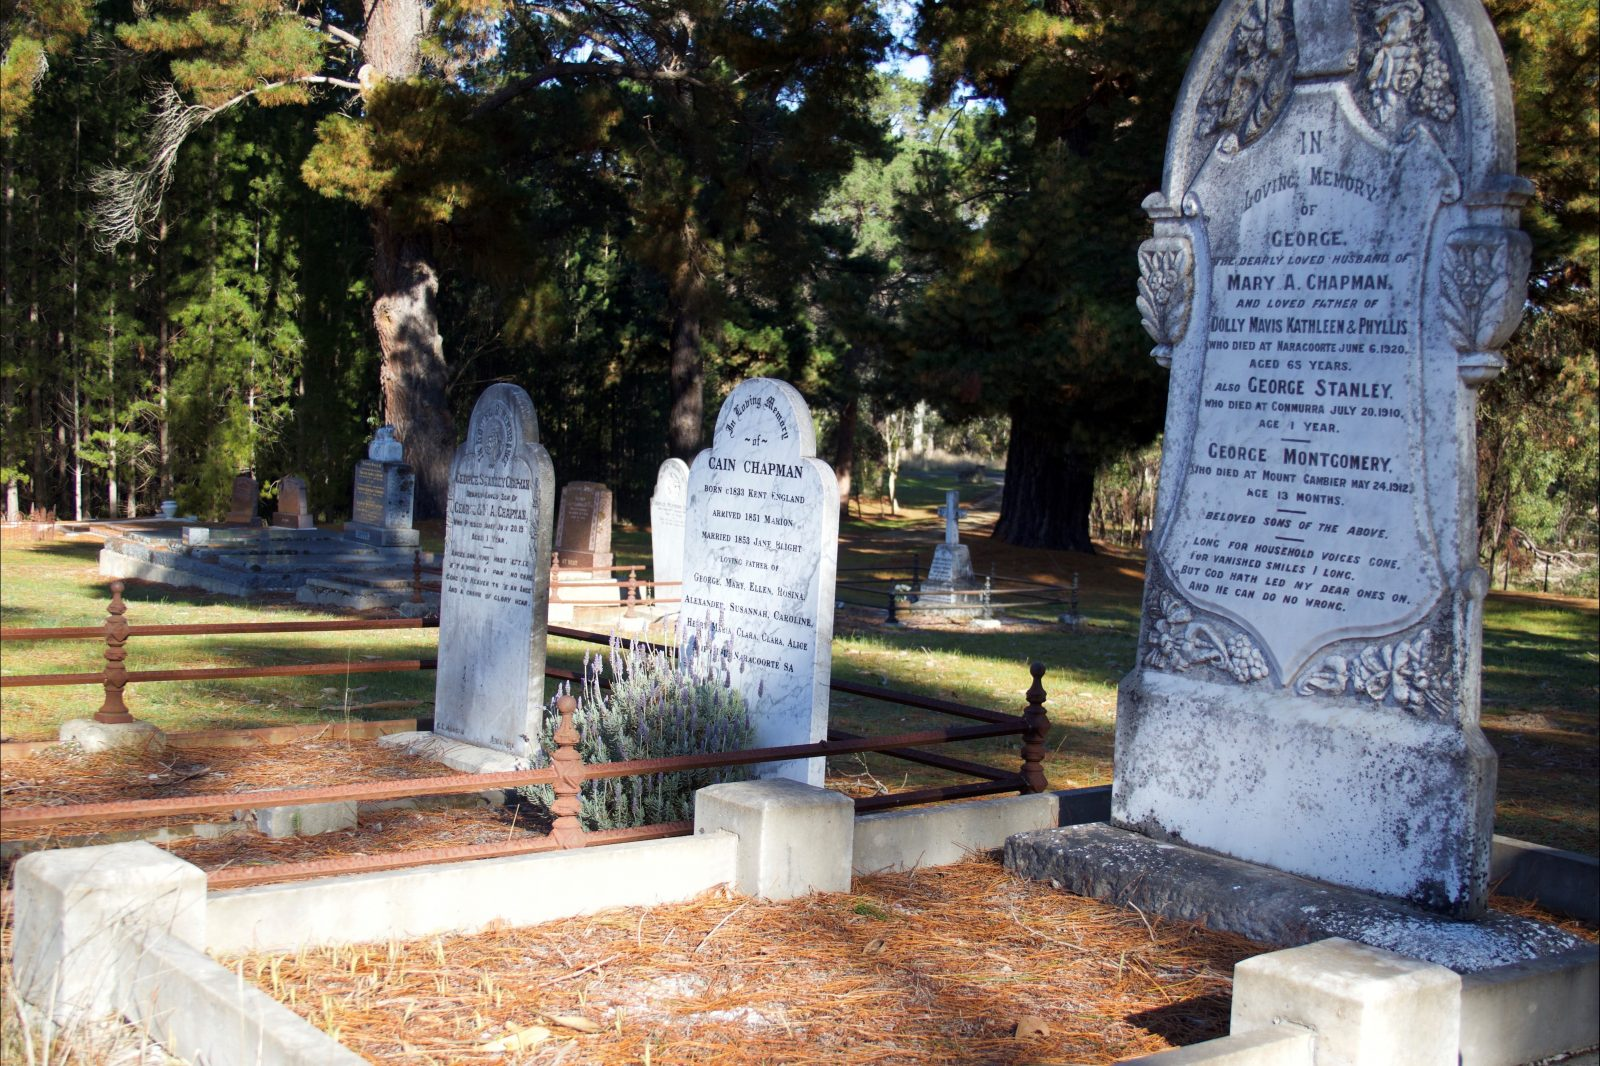 Historic gravestones from bygone times are a fascinating feature of the Lucindale Cemetery.